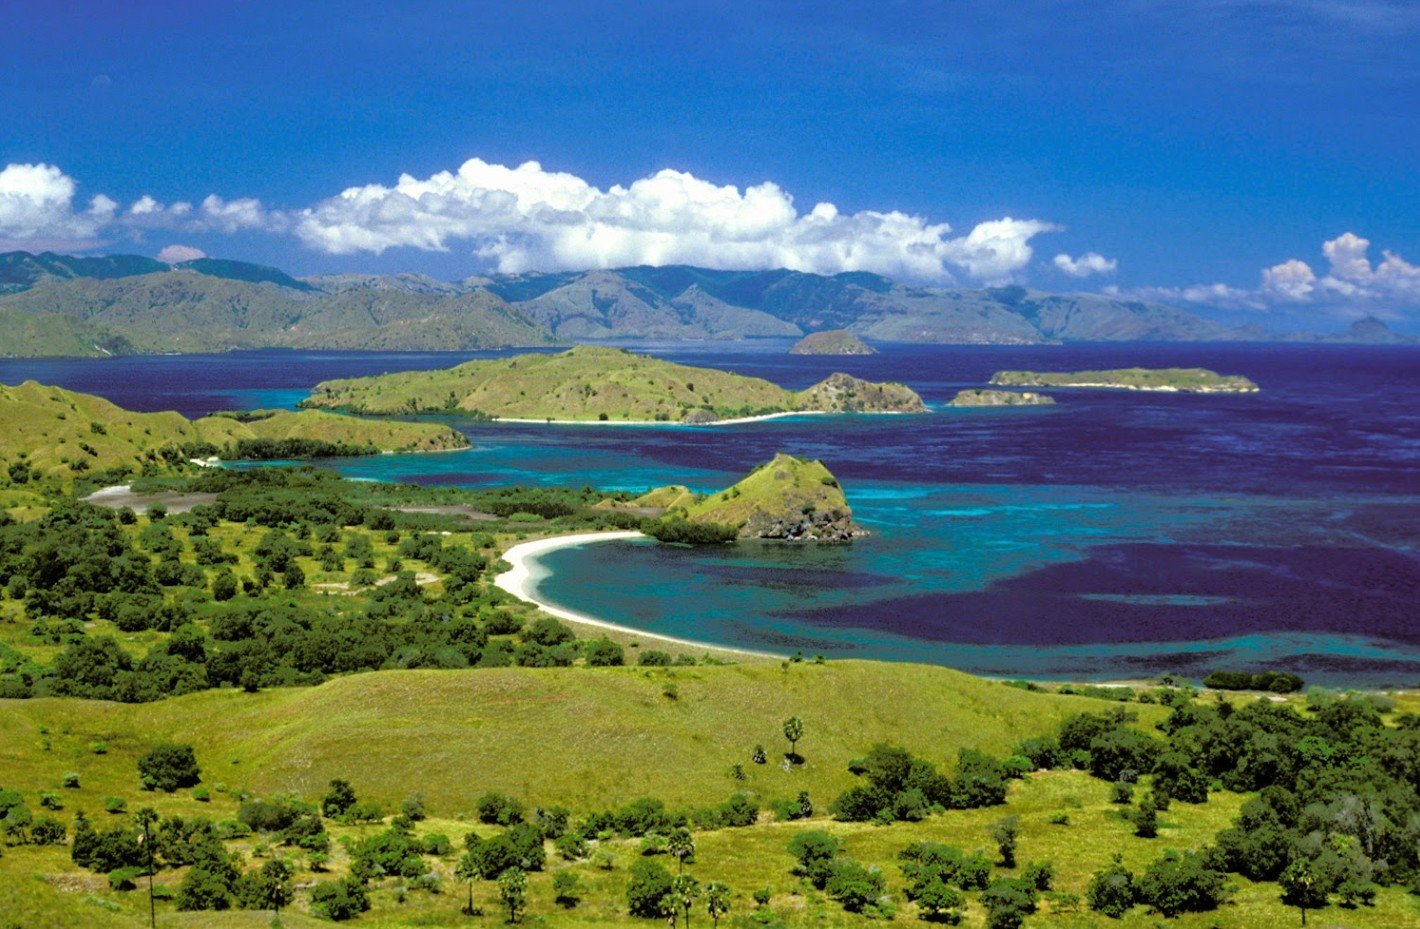 2Questions-029714 (Indonesia-Padar Island)